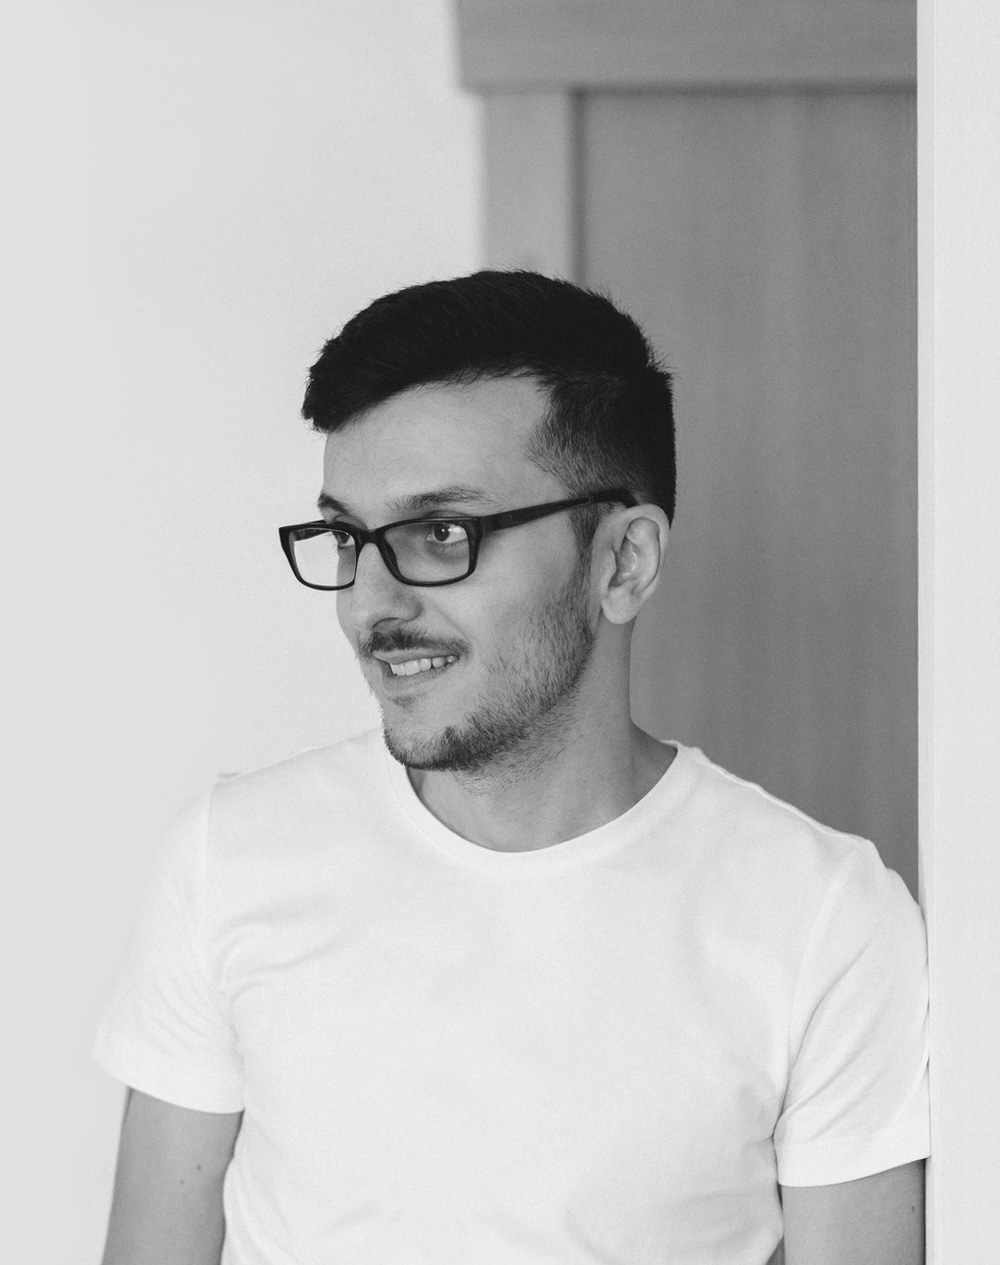 About me - I'm a multi-disciplinary visual designer from Bucharest, Romania.I specialize in Art and Creative Direction, Graphic Design, UI Design, User Experience and Typography. I have 13 years of work experience delivering digital and brand experience for a wide range of clients, from start-ups to established companies.